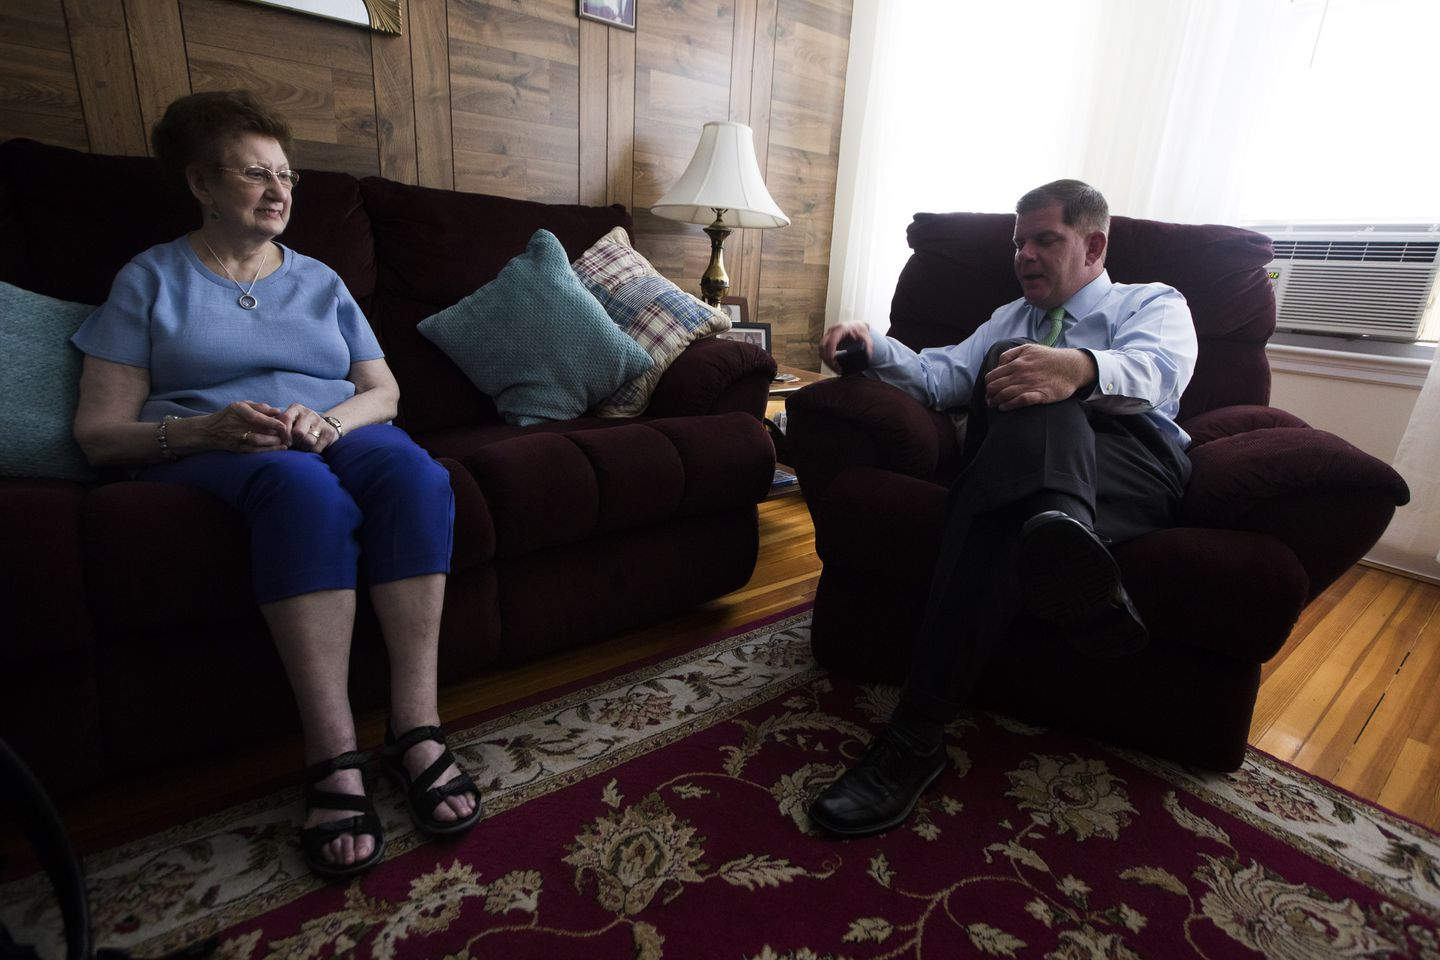 Walsh visits with his mom, who still lives in the Dorchester triple-decker where he grew up.